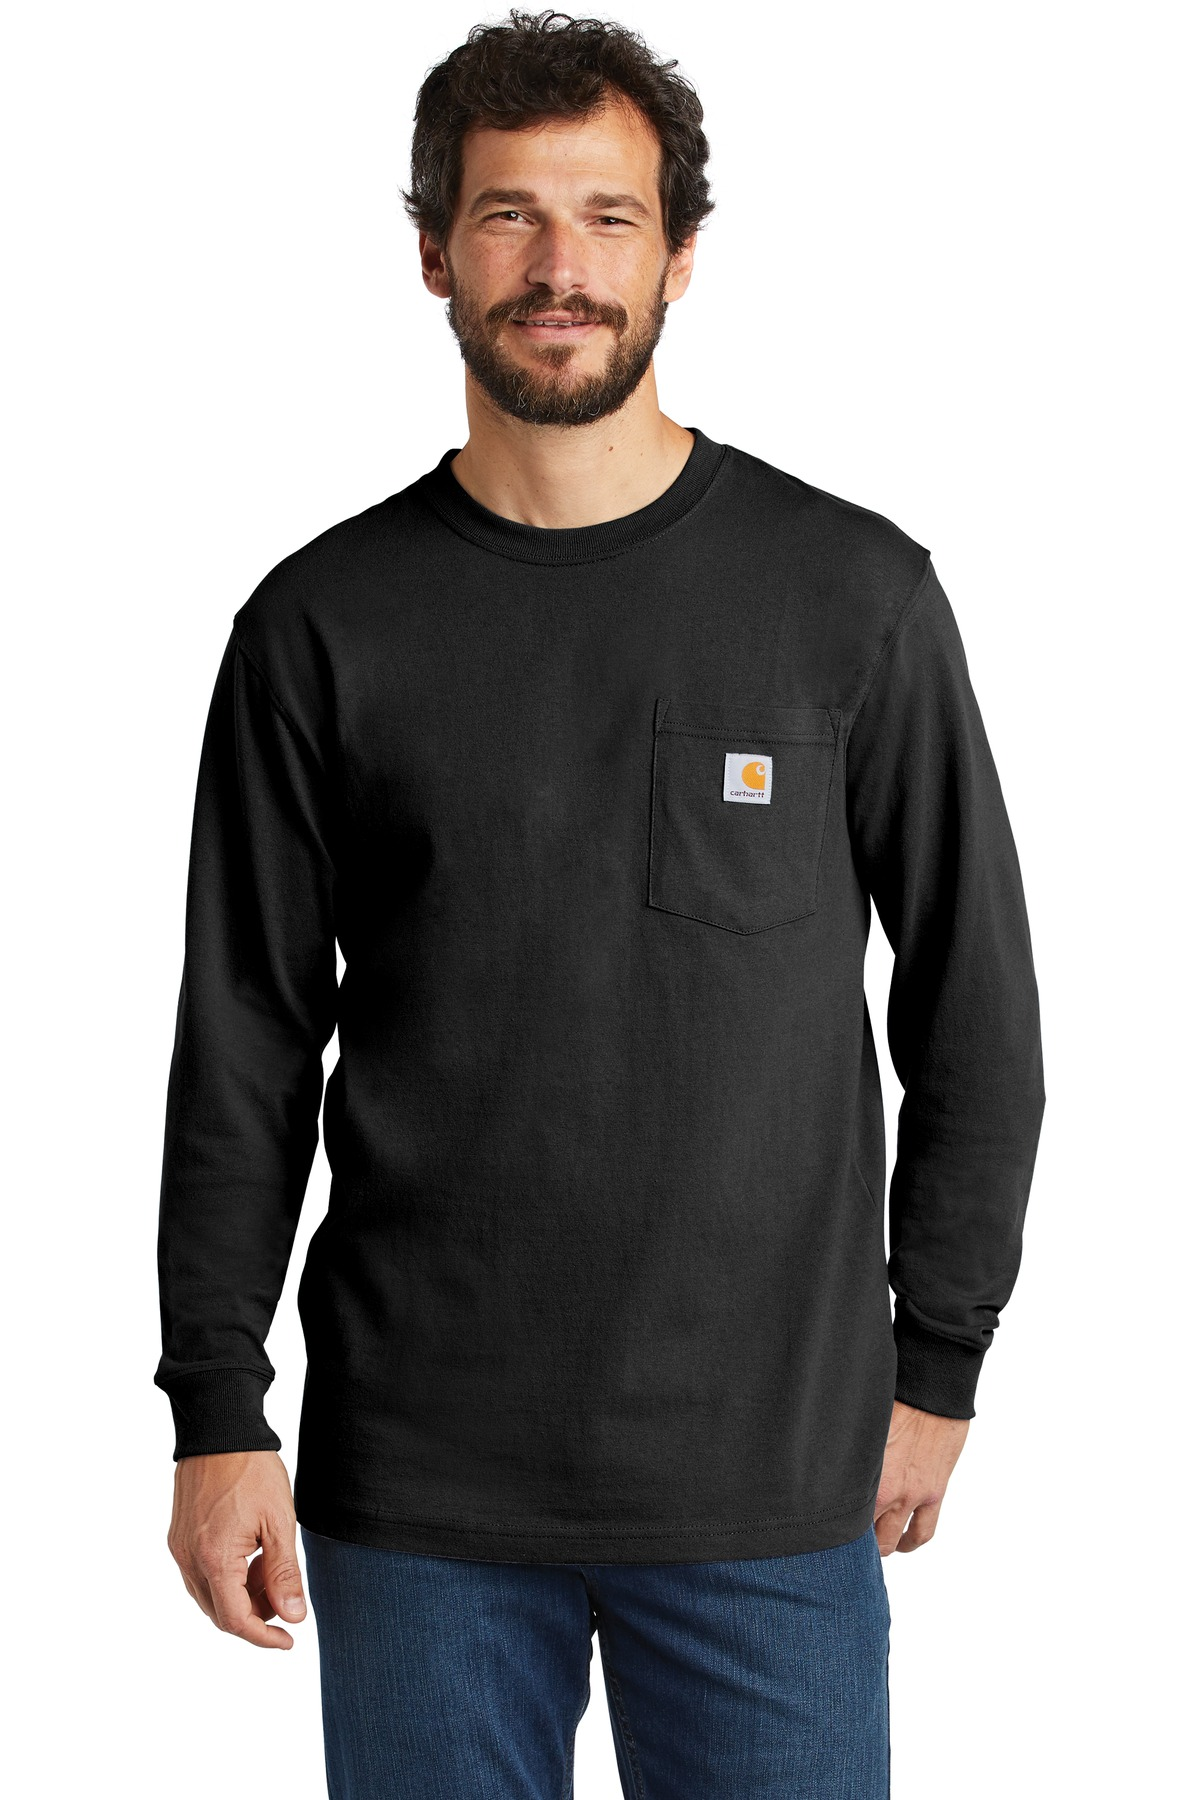 Carhartt  ®  Workwear Pocket Long Sleeve T-Shirt. CTK126 - Black